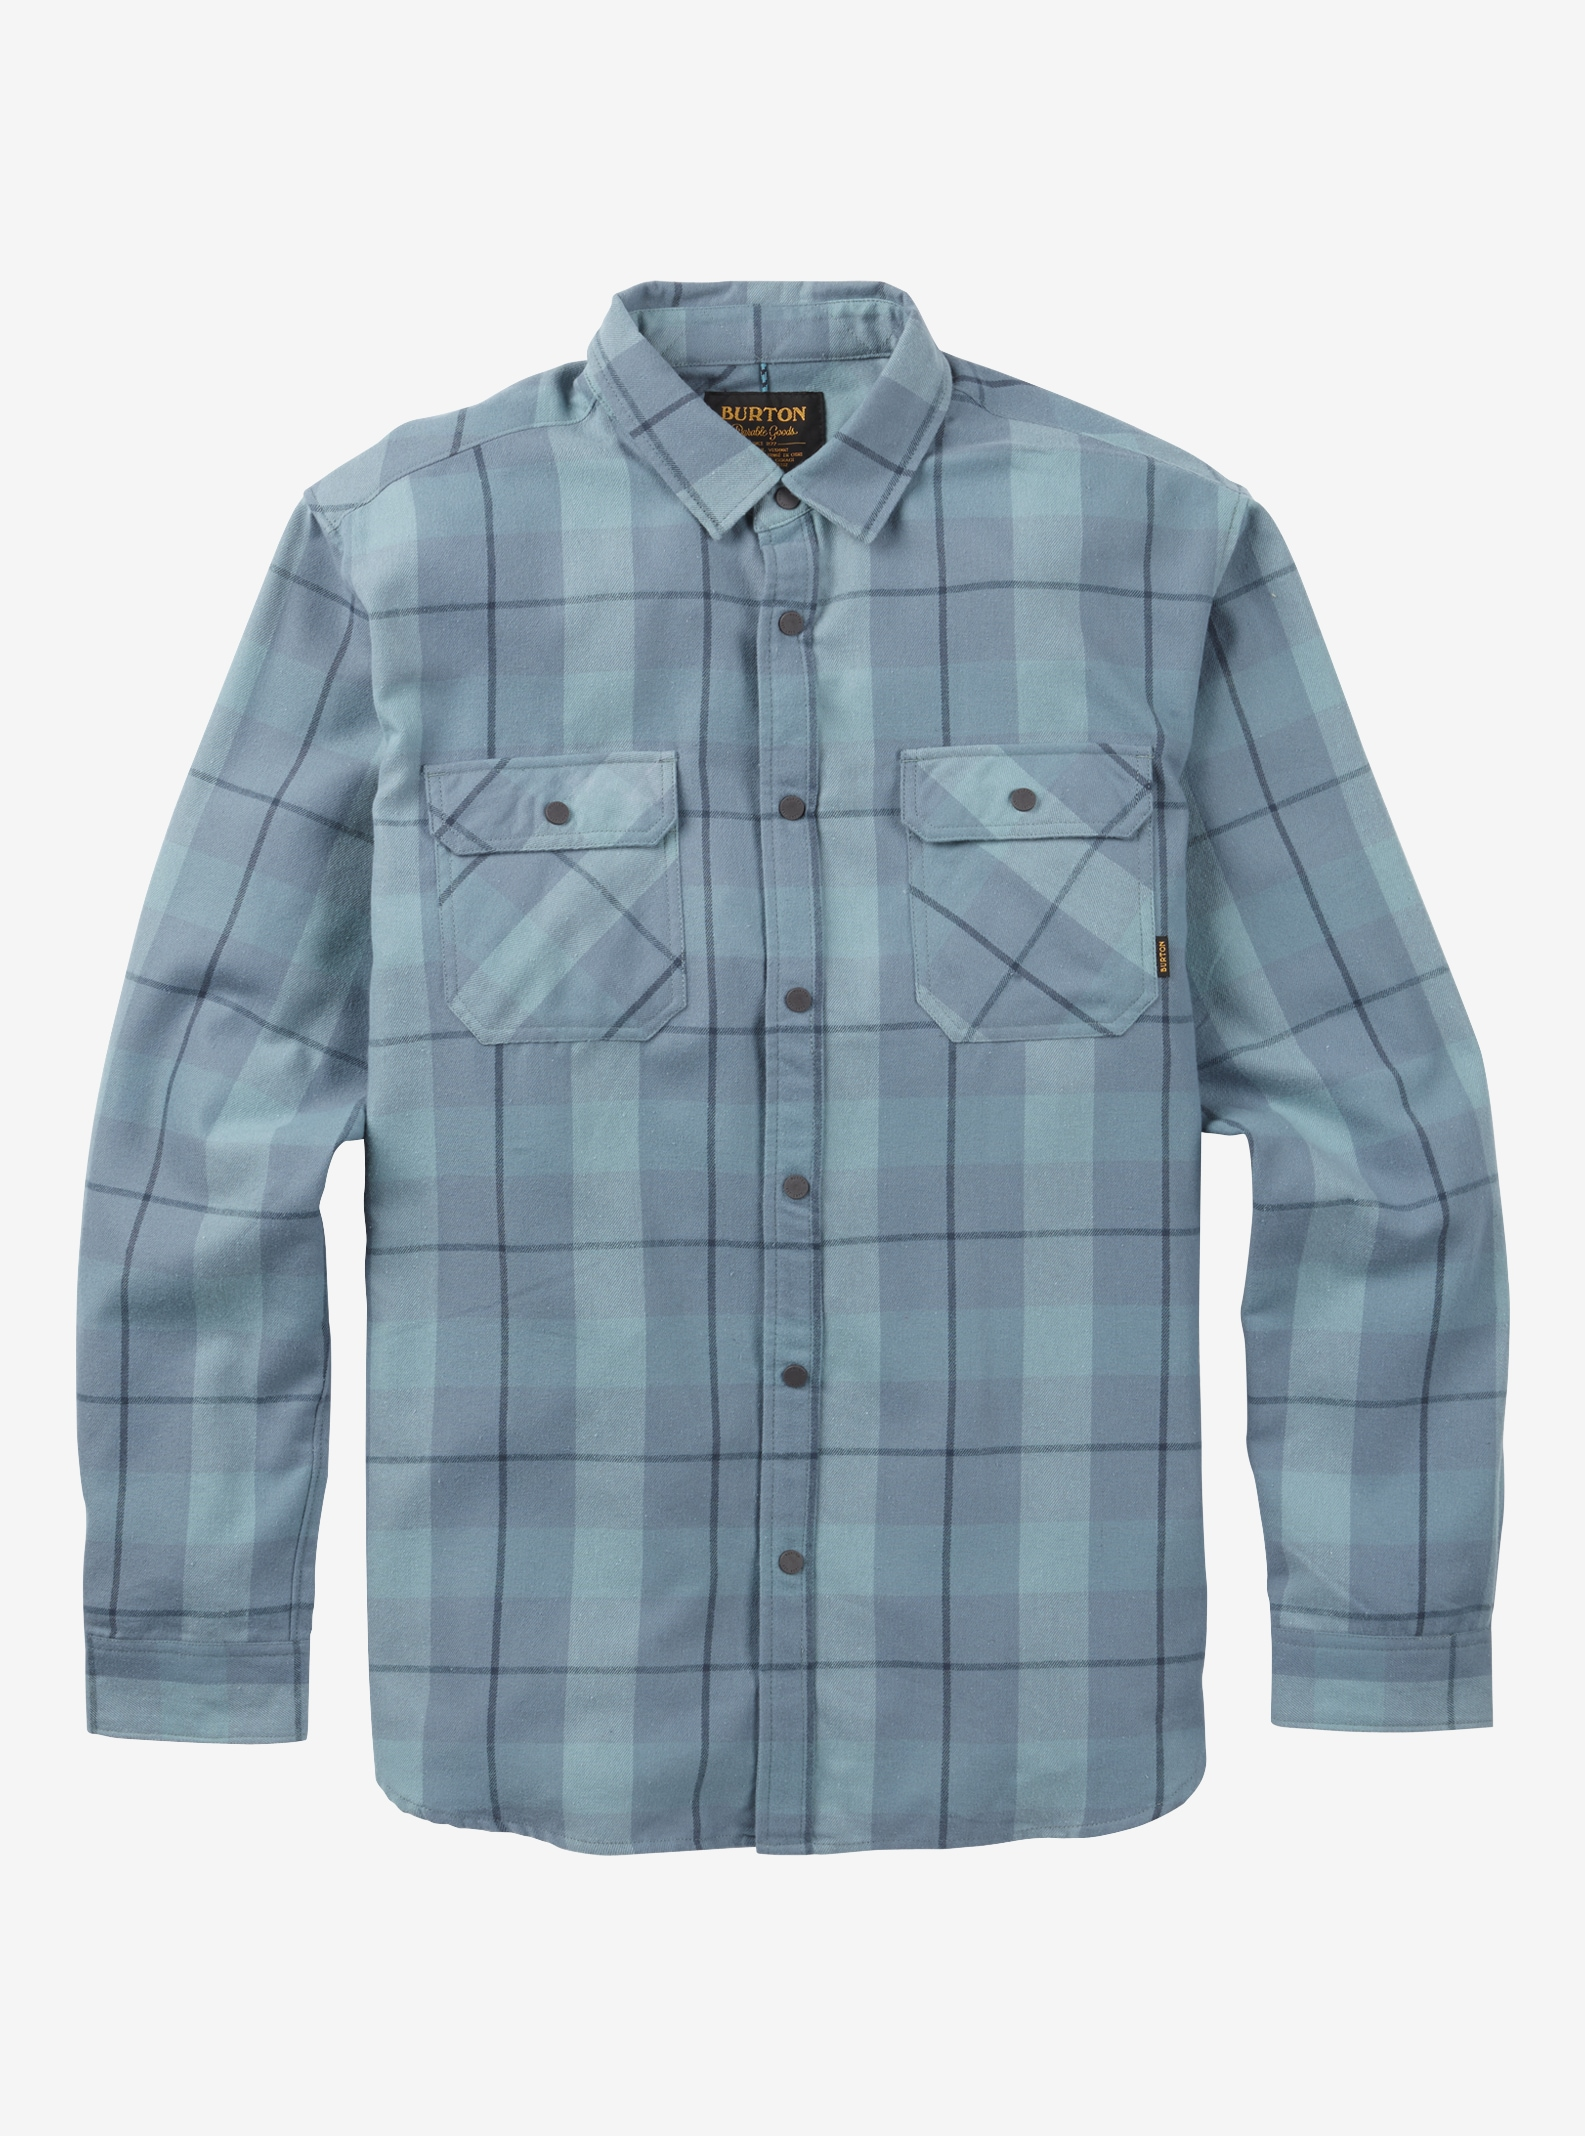 Men's Burton Brighton Tech Flannel shown in Whale Boxelder Plaid